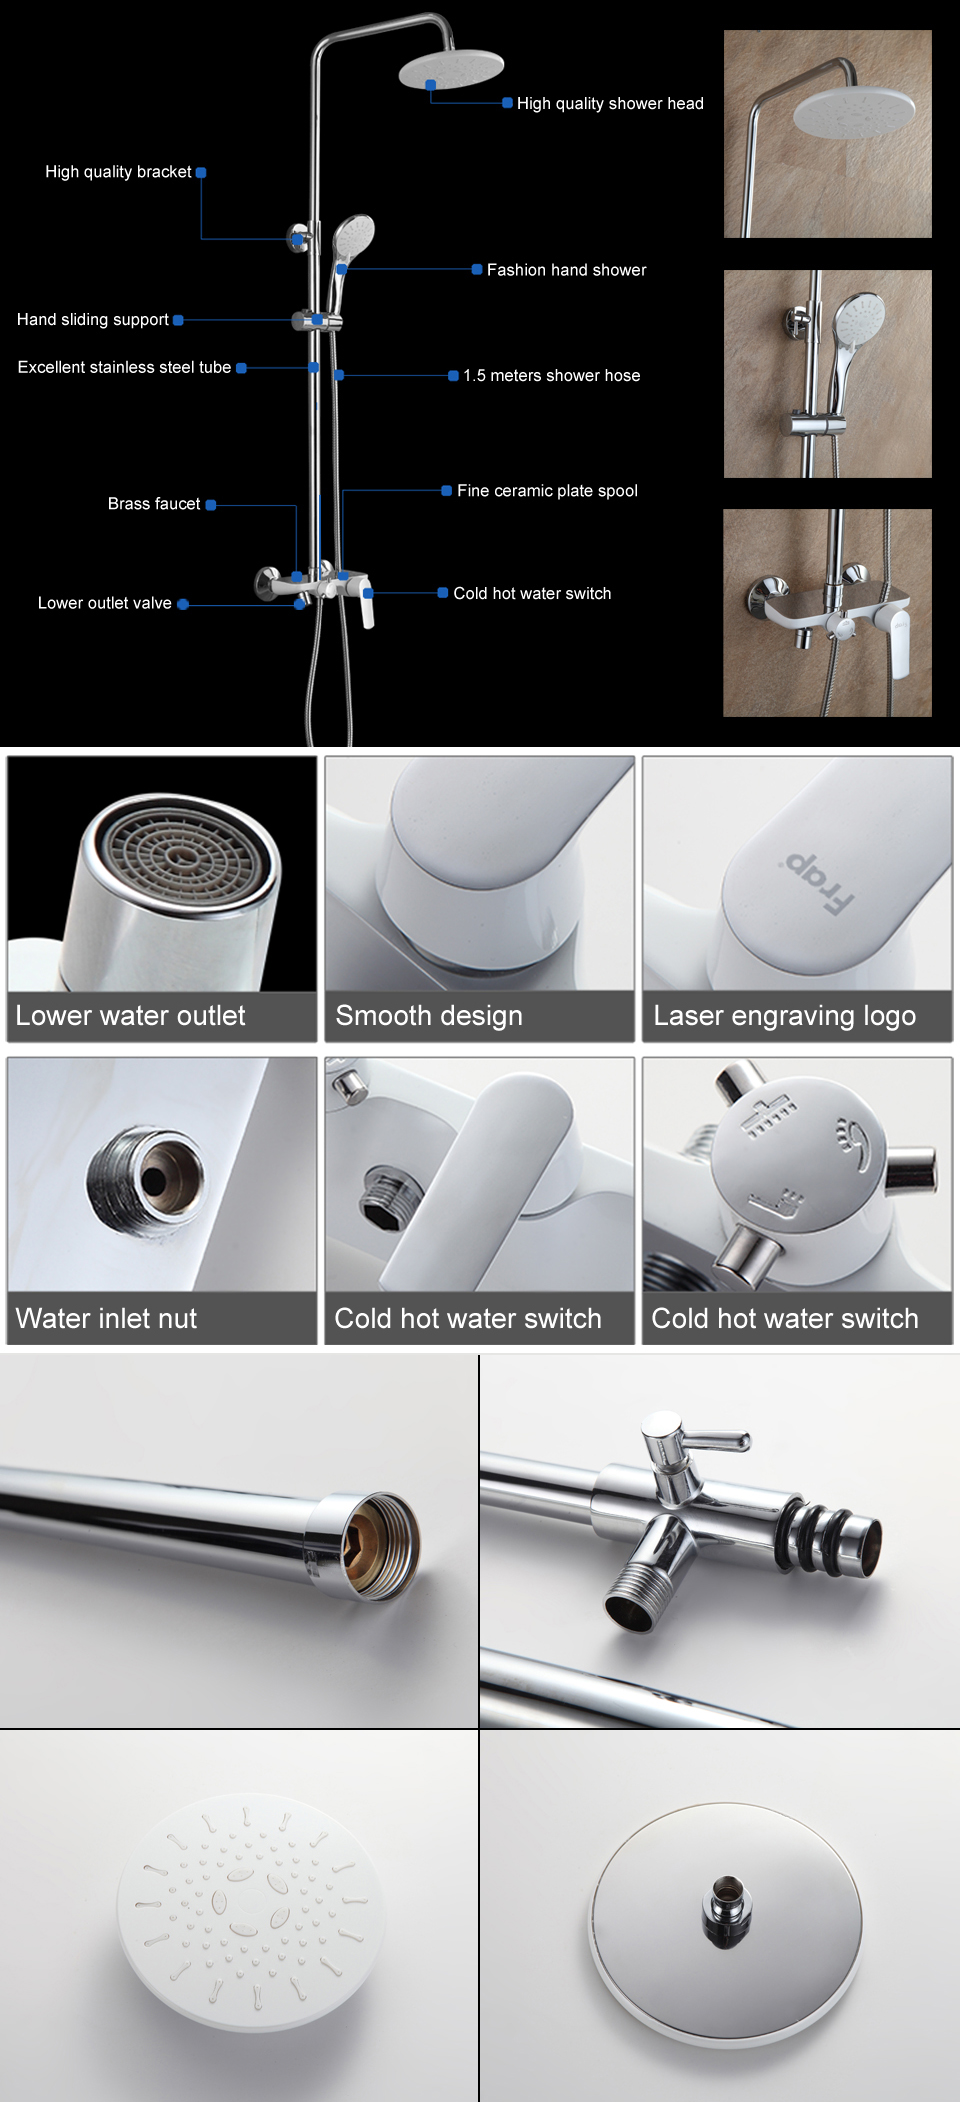 FRAP F2431 Bathroom Wall Mounted White Round Spray Rainfall Top Shower with Handheld Shower Head and Faucet Shower Sets